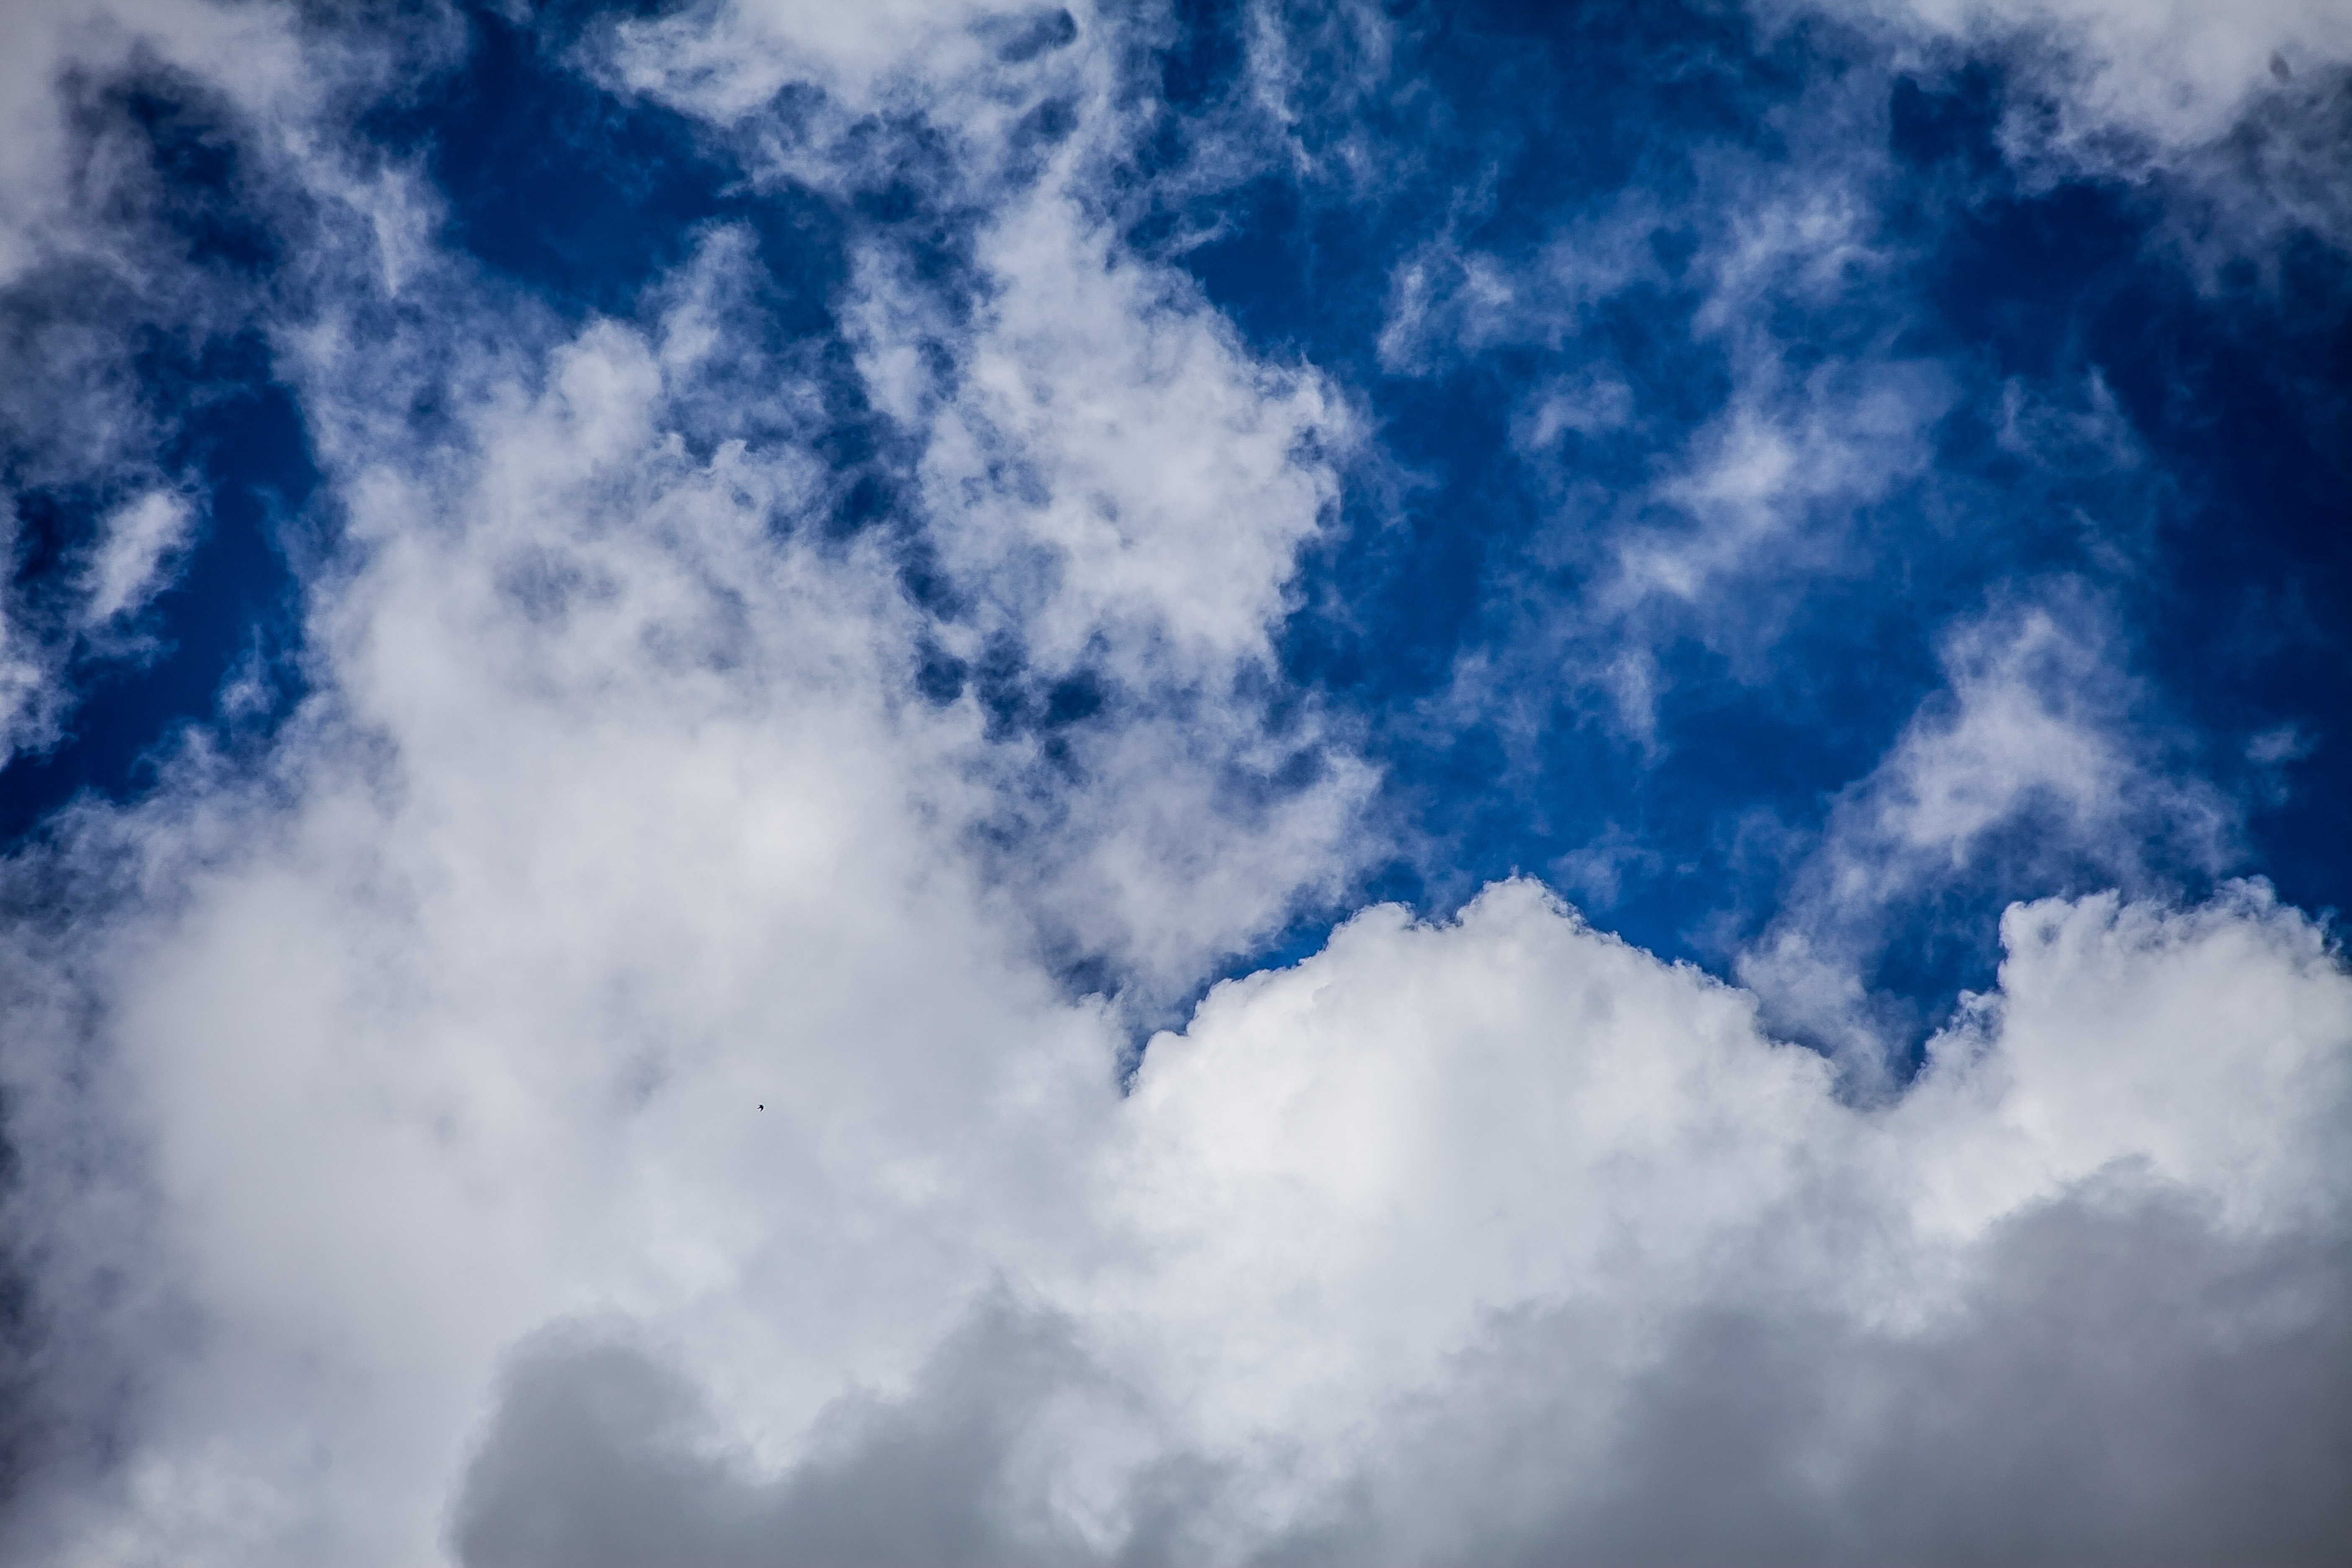 Cloud formations against a sapphire blue sky